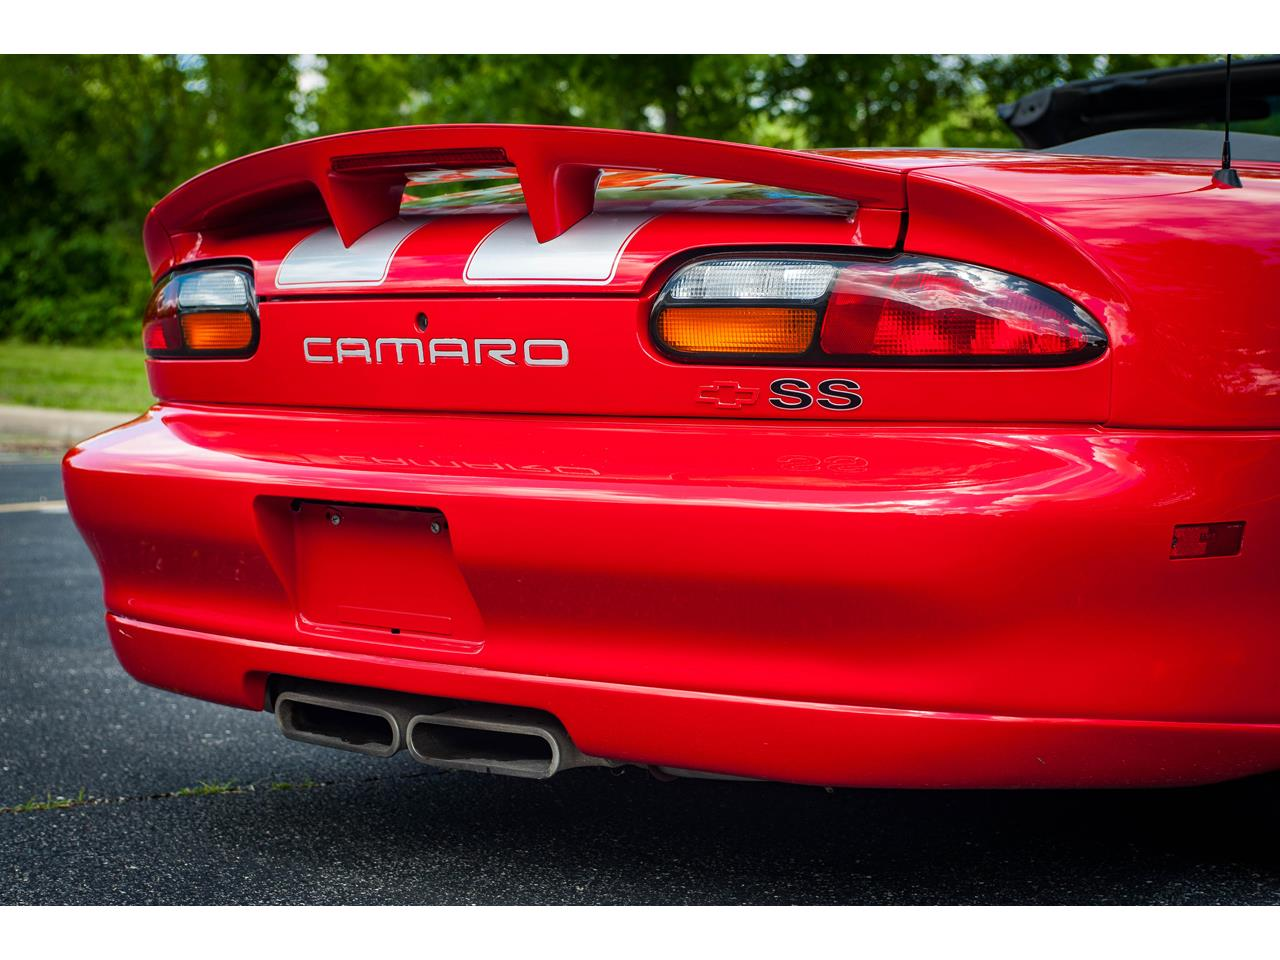 Large Picture of '02 Camaro located in Illinois Offered by Gateway Classic Cars - St. Louis - QB9Z